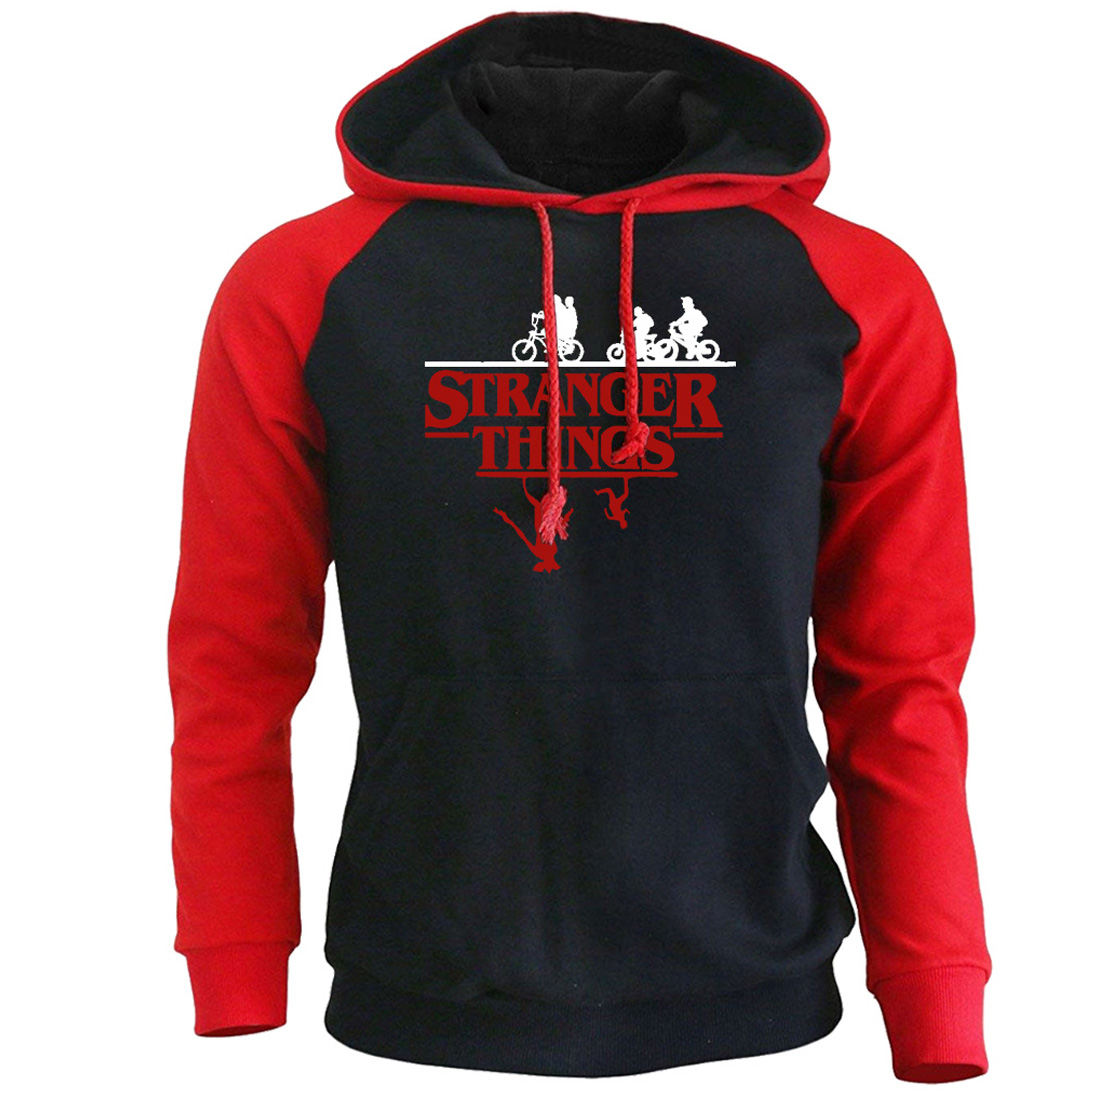 Mens Hoodies Stranger Things Streetwear 2019 Autumn Winter Fleece Raglan Hoodie Men Hip Hop Hooded Sweatshirts Harajuku Hoody